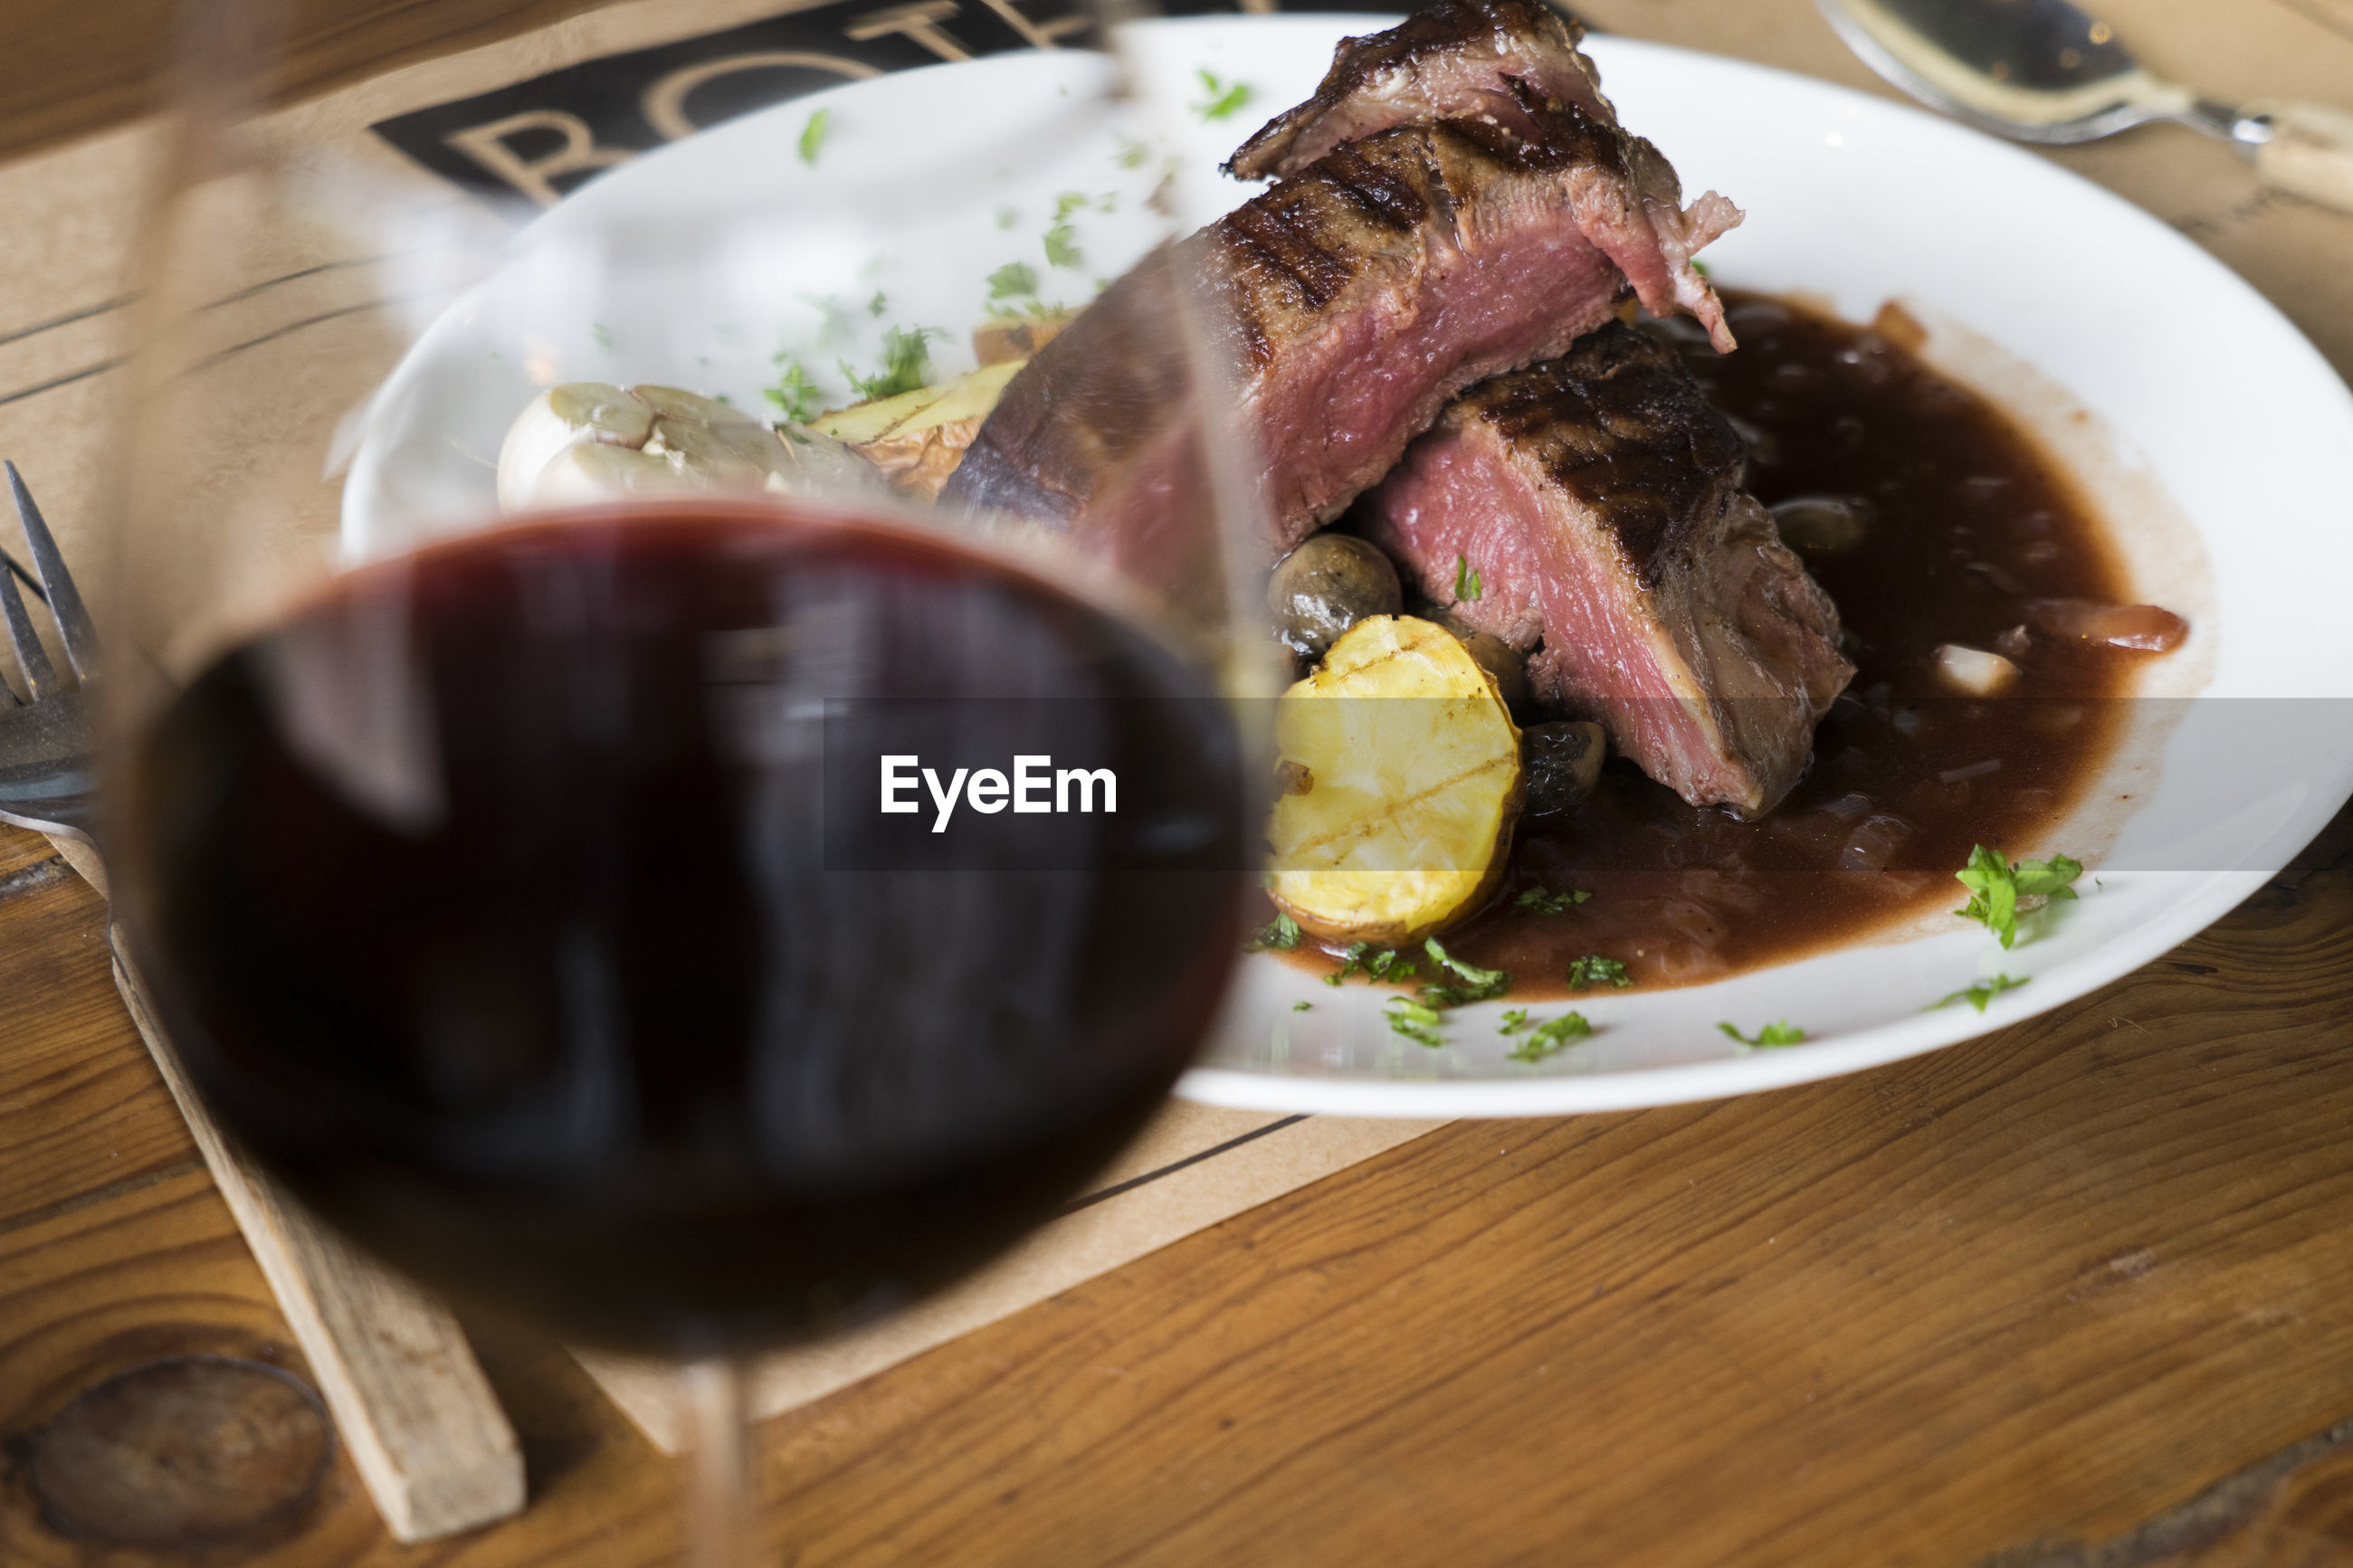 High angle view of beef steak and red wine served on table